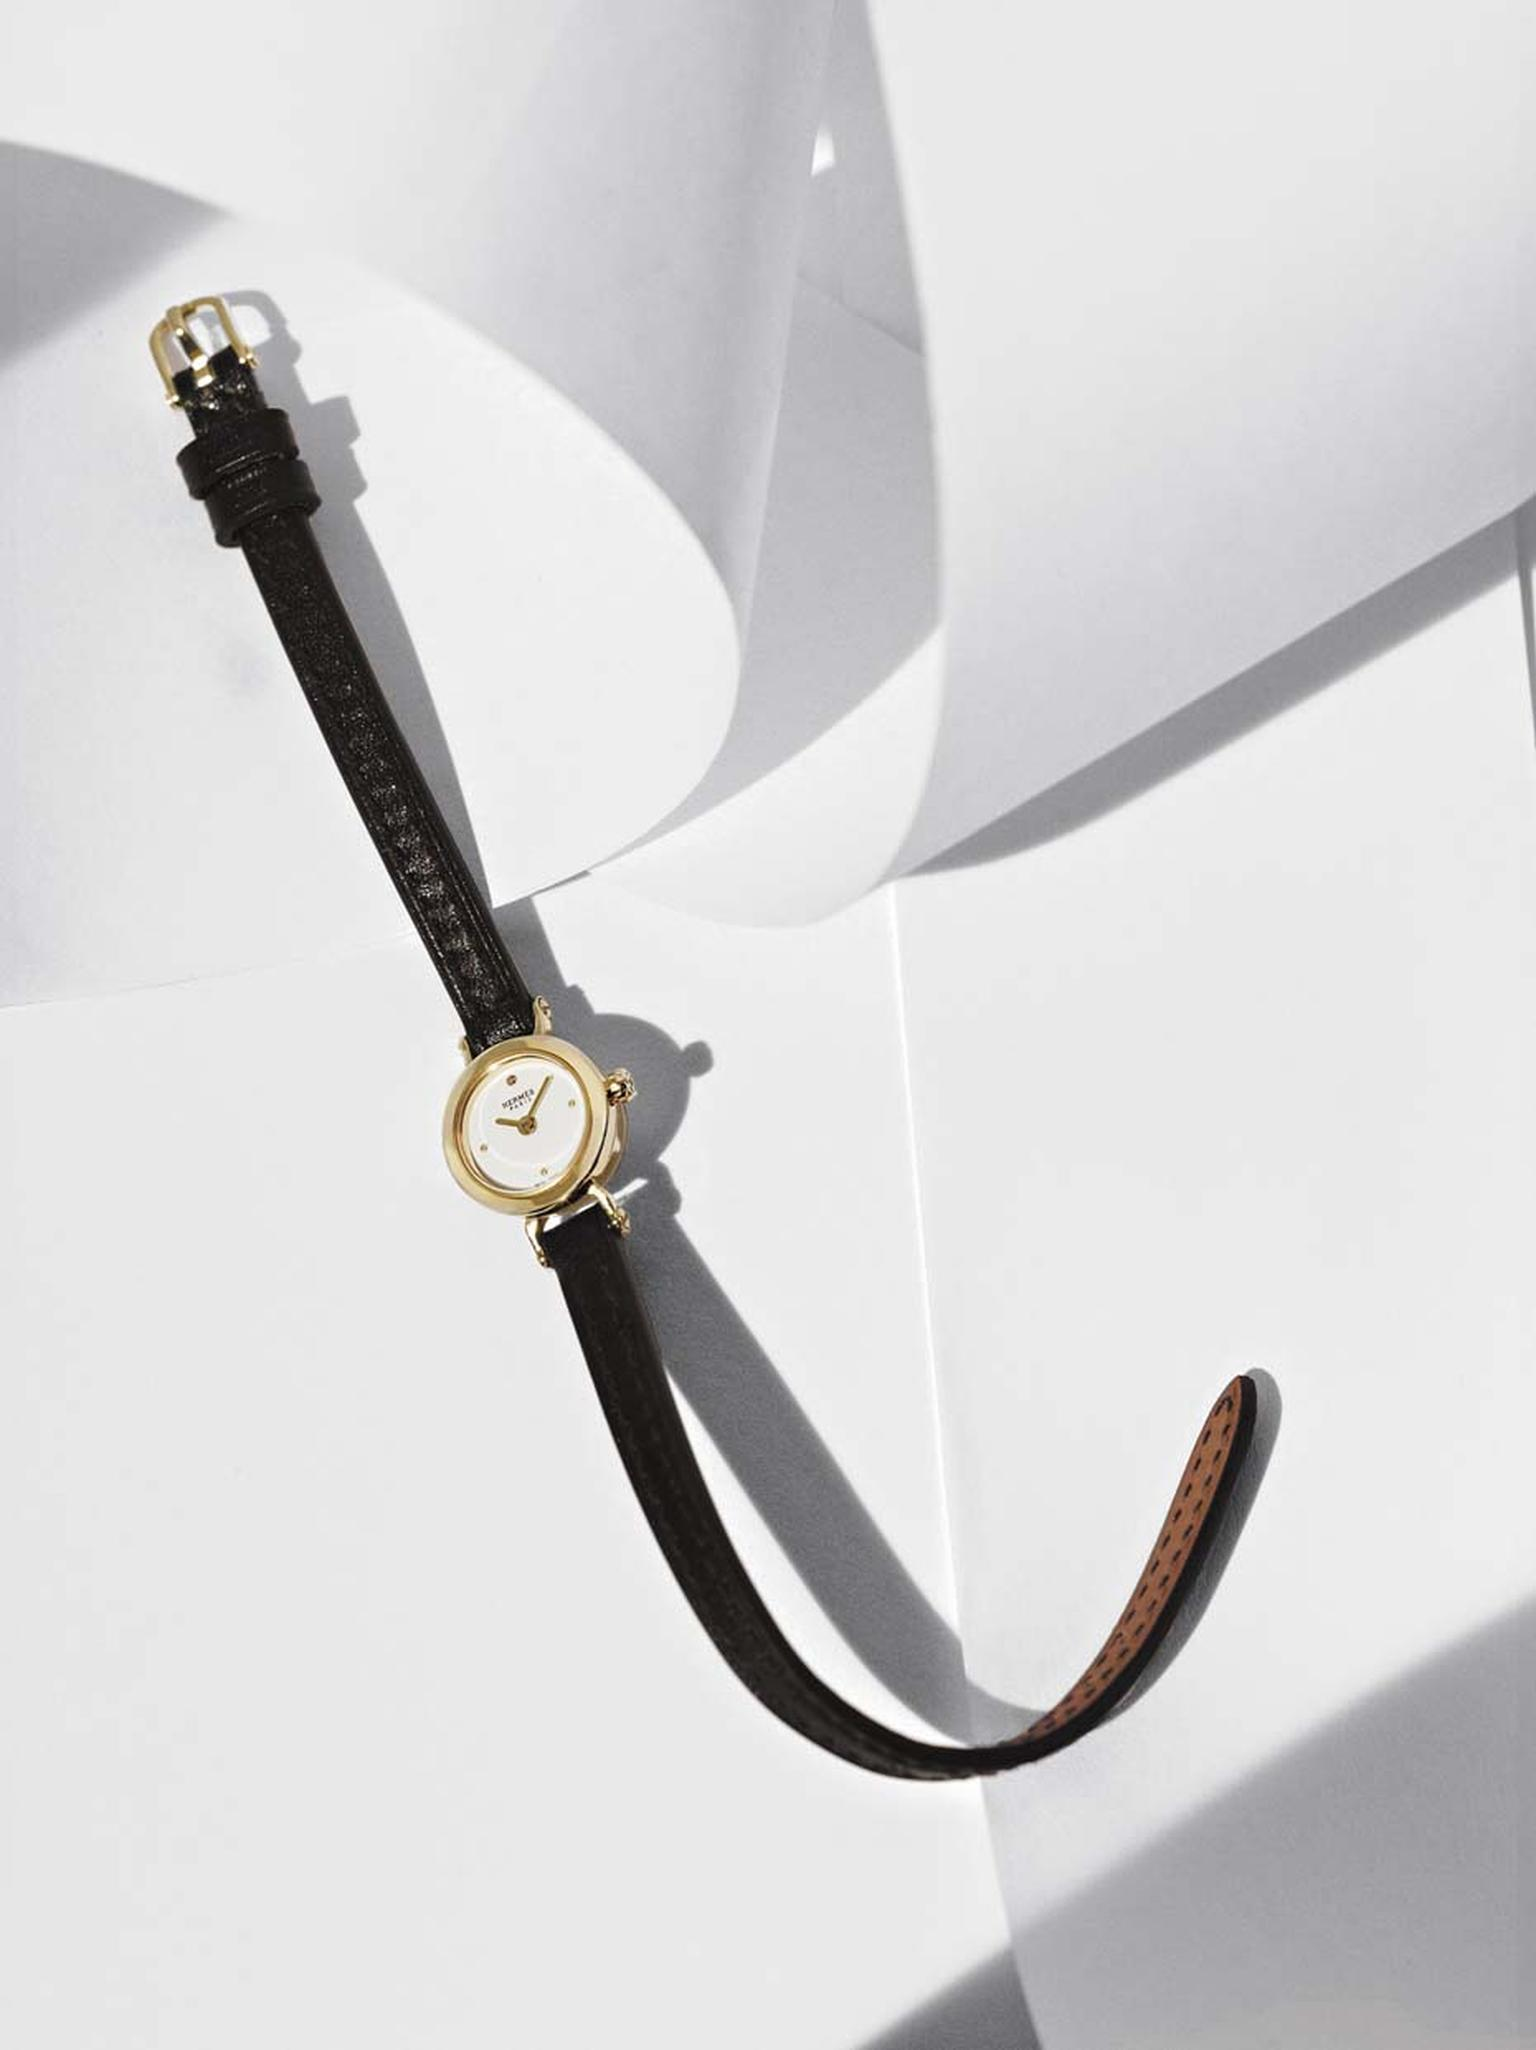 Hermès Faubourg watch with a yellow gold case and black Box calf strap